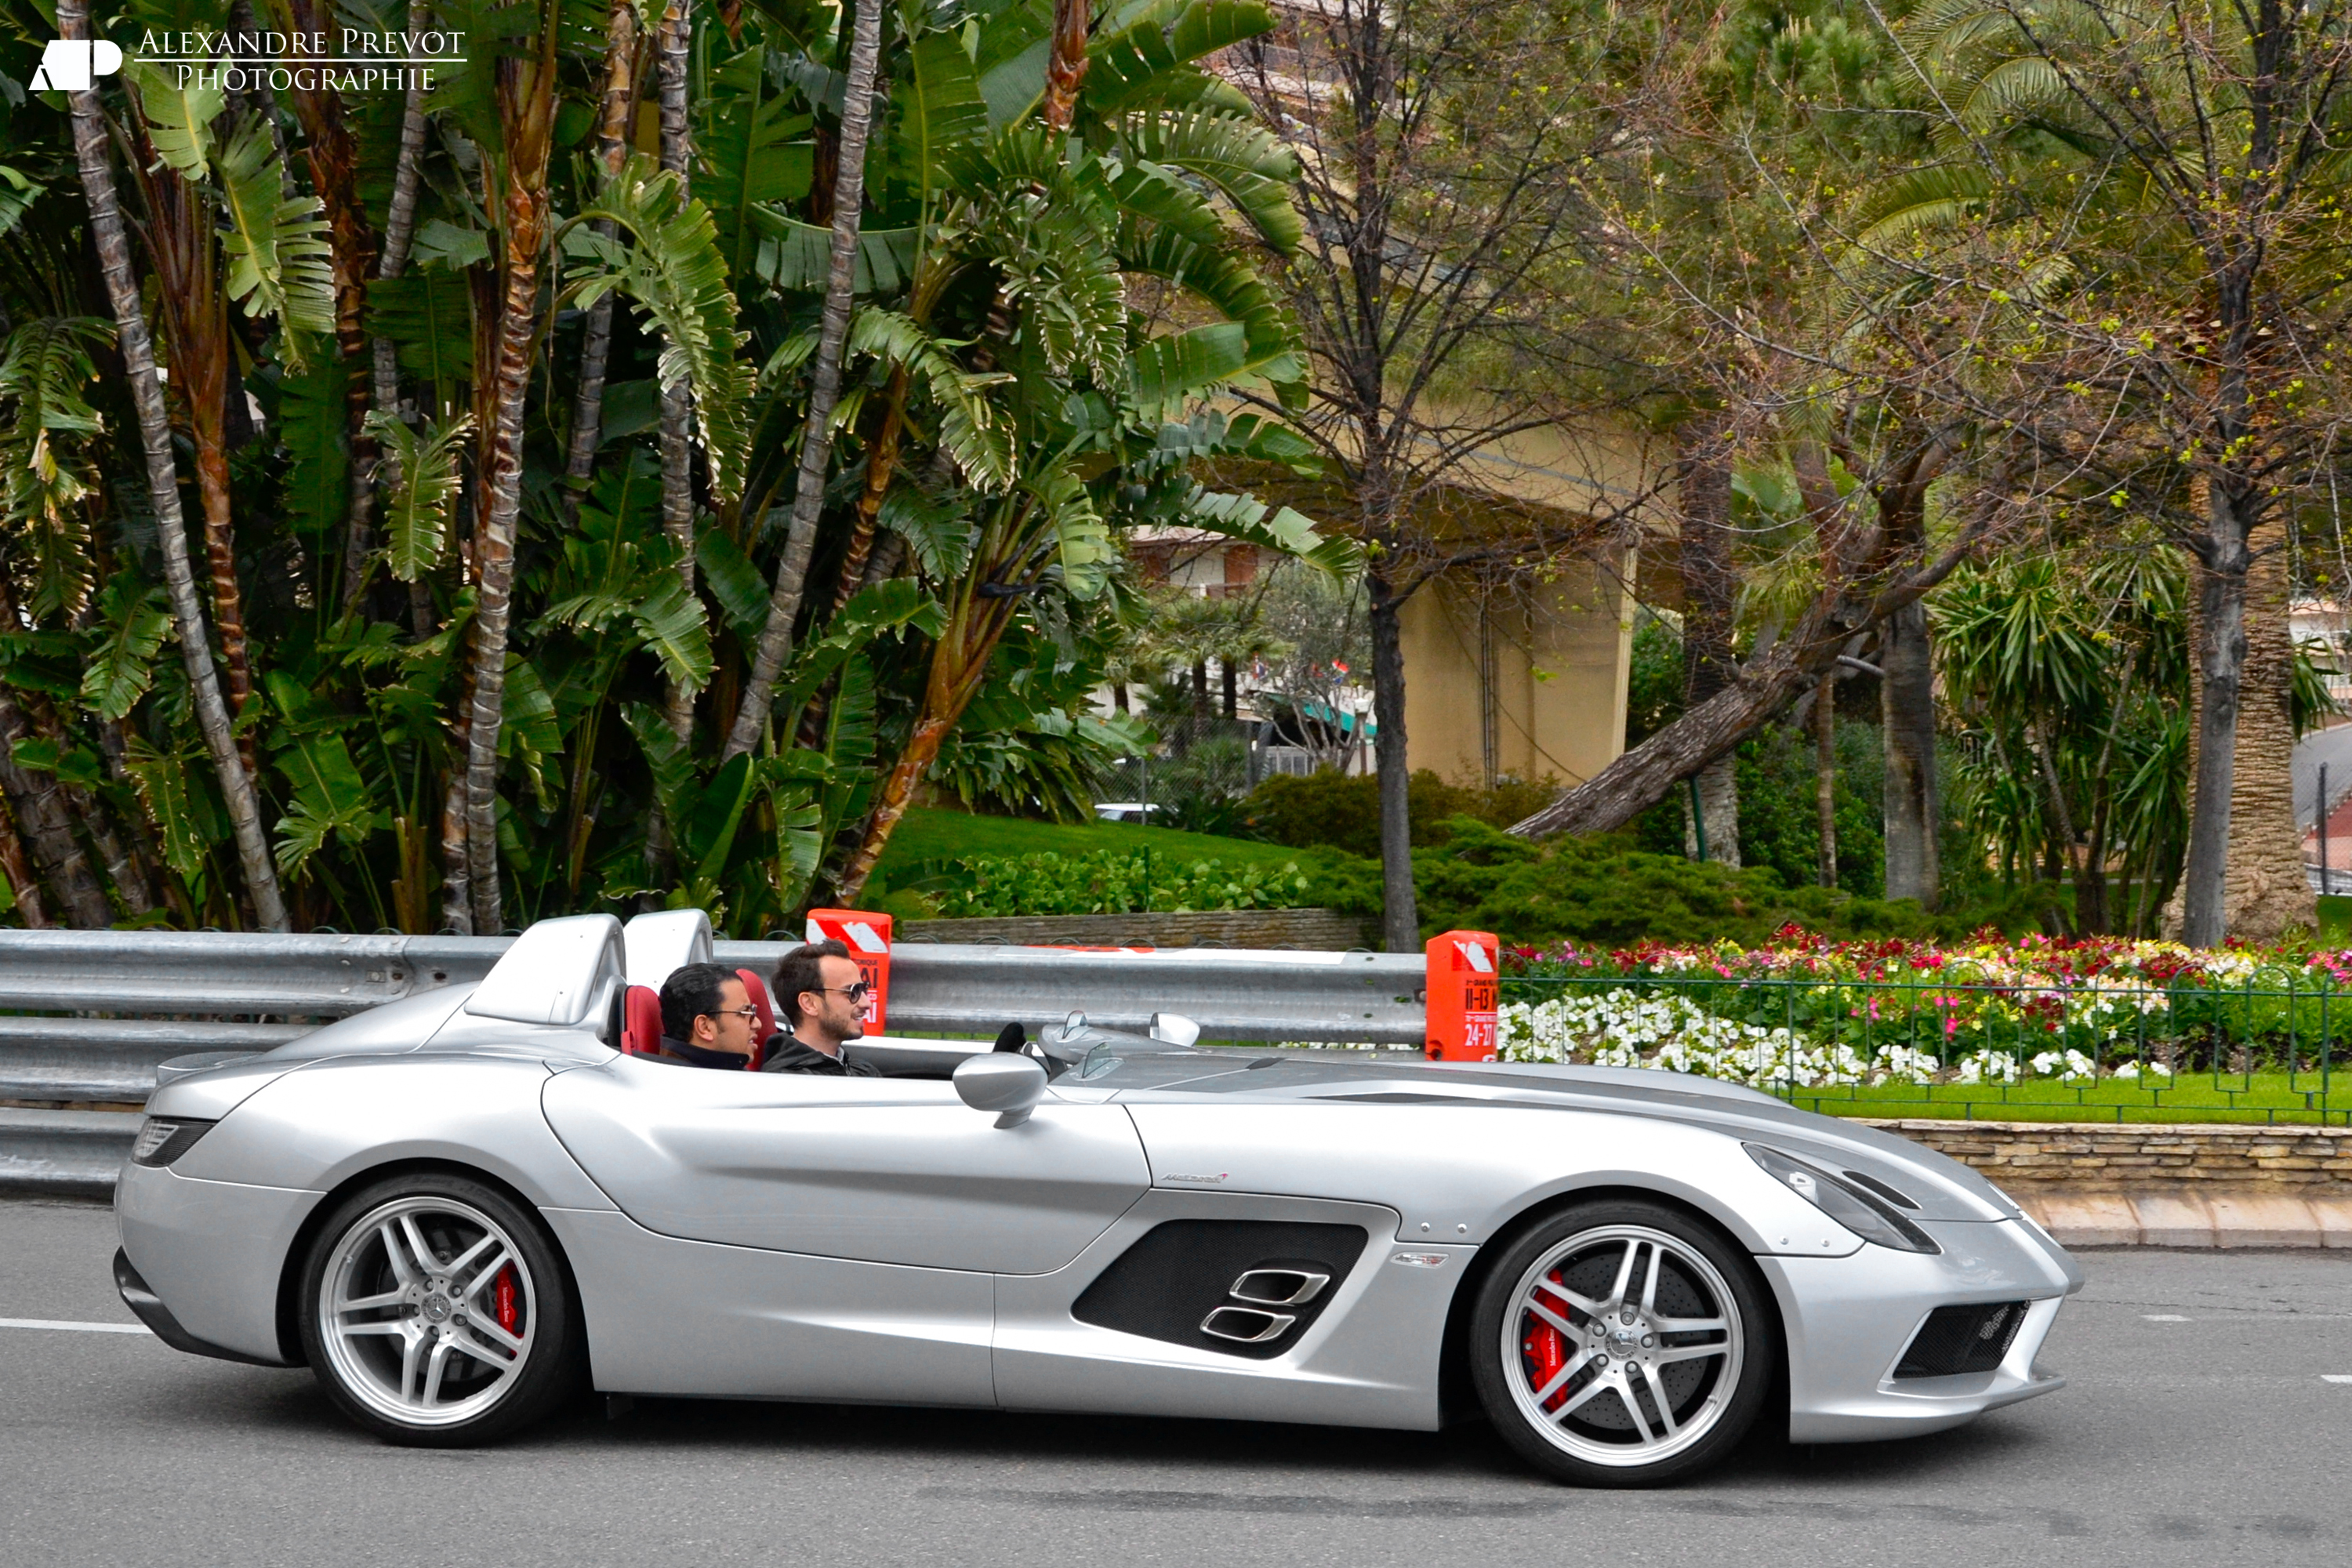 file mercedes benz slr stirling moss flickr alexandre pr vot 3 jpg wikimedia commons. Black Bedroom Furniture Sets. Home Design Ideas